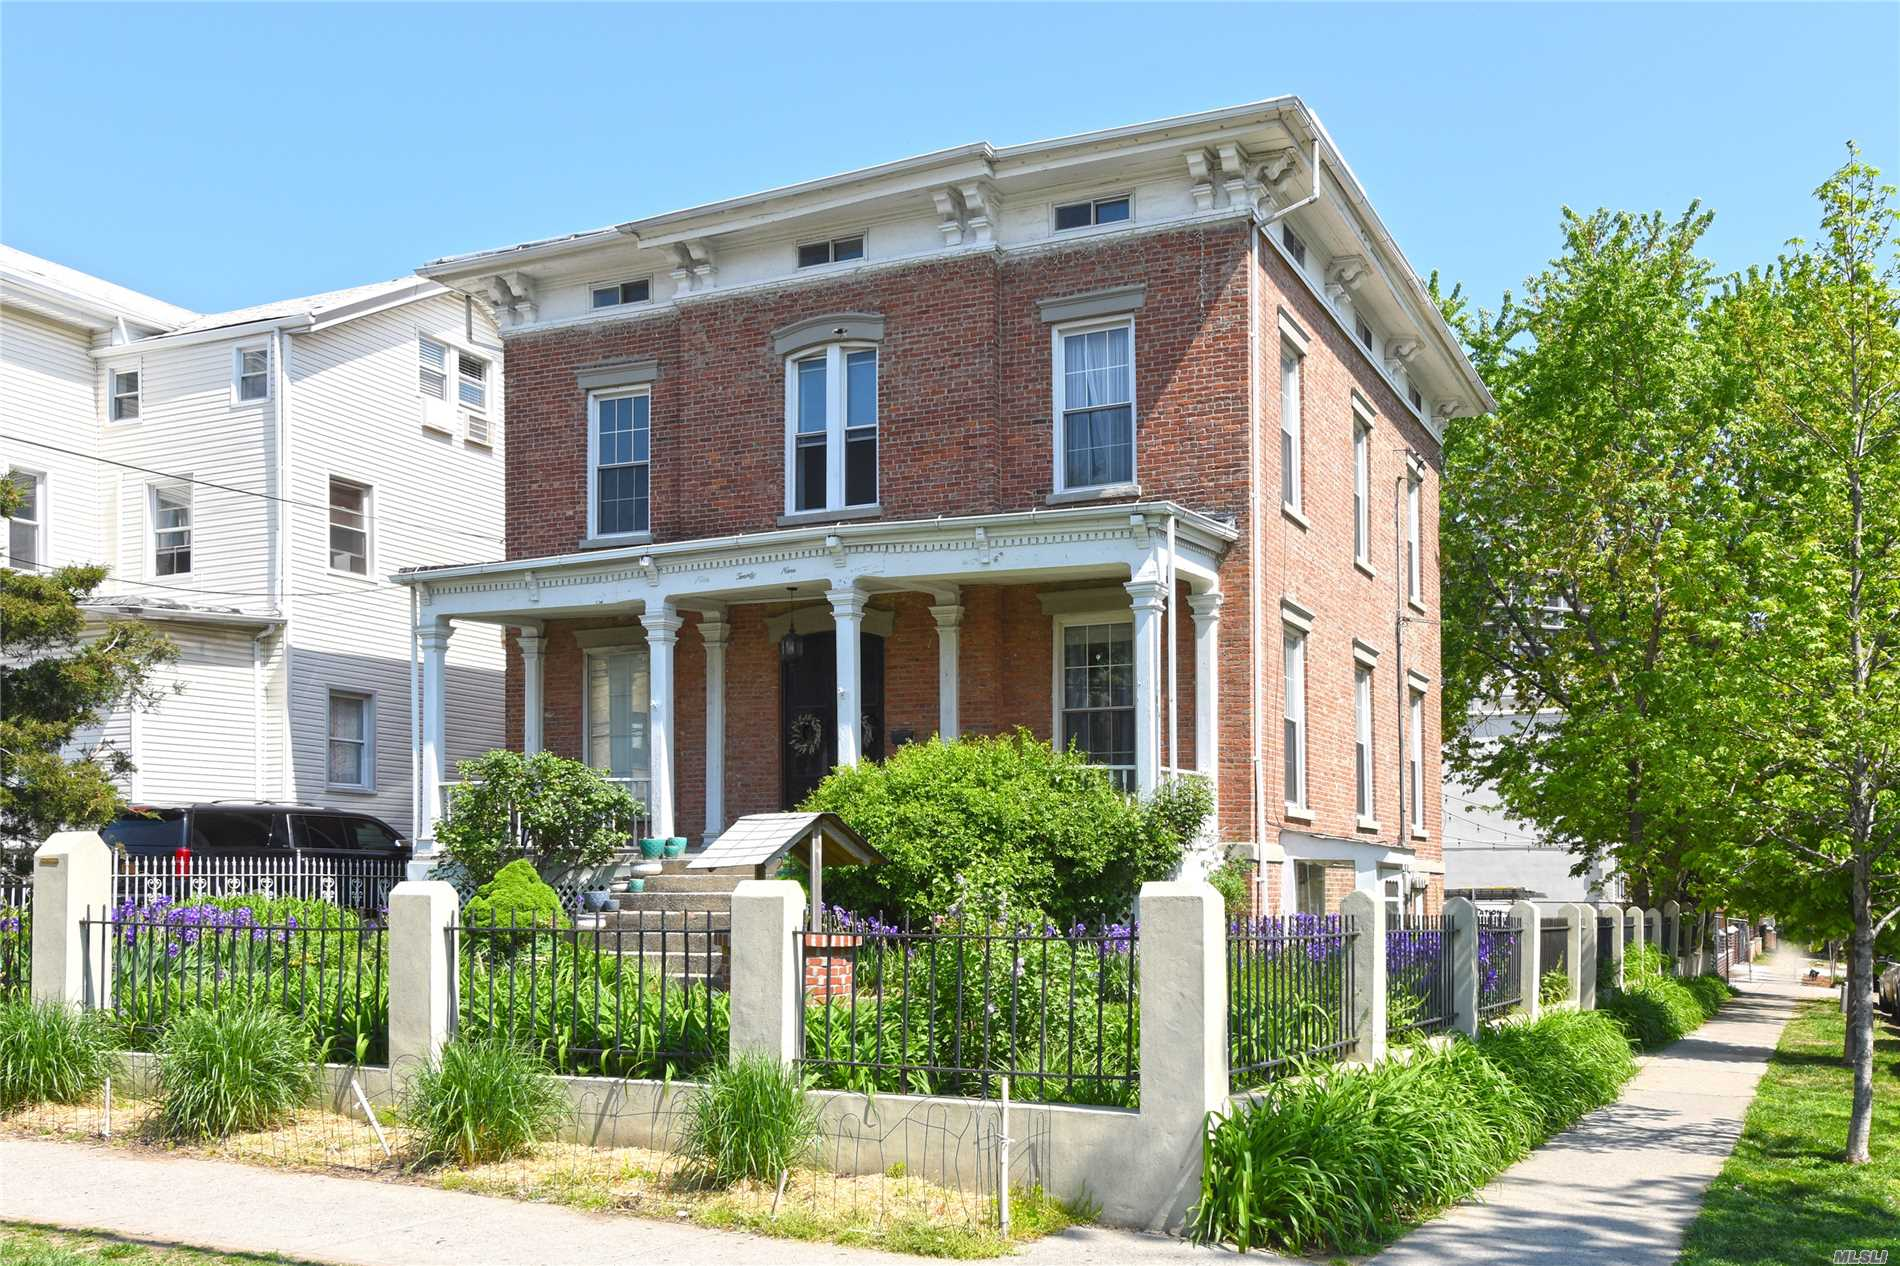 Live In This Historic Mansion On The First Floor, Complete With Ballroom And Marble Fireplace. This Historic Home Built In 1827 Has Secret Tunnel To The River As Part Of The Underground Railroad. 2 Bedrooms And 1 1/2 Baths With Laundry In The Half Bath. Huge Eat In Kitchen And Use Of Landscaped Backyard With Gardens, Fire Pit And Eating Area. This Is A Dream That Could Be Your Reality!